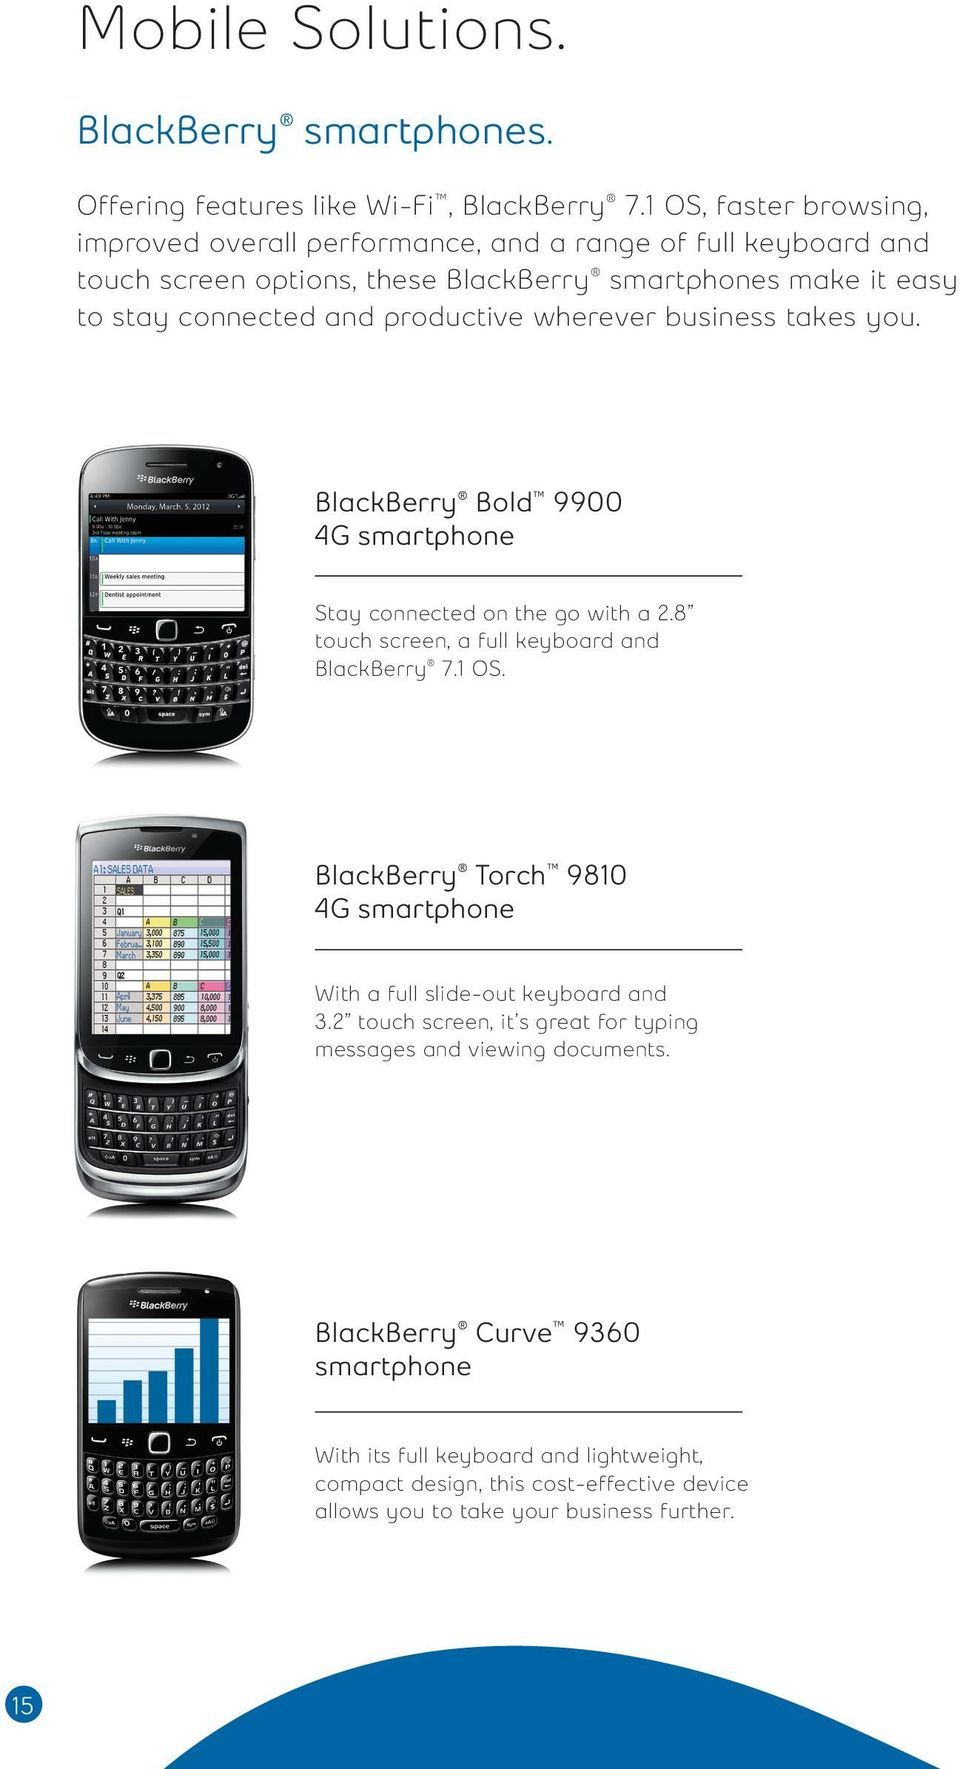 productive wherever business takes you. BlackBerry Bold 9900 4G smartphone Stay connected on the go with a 2.8 touch screen, a full keyboard and BlackBerry 7.1 OS.